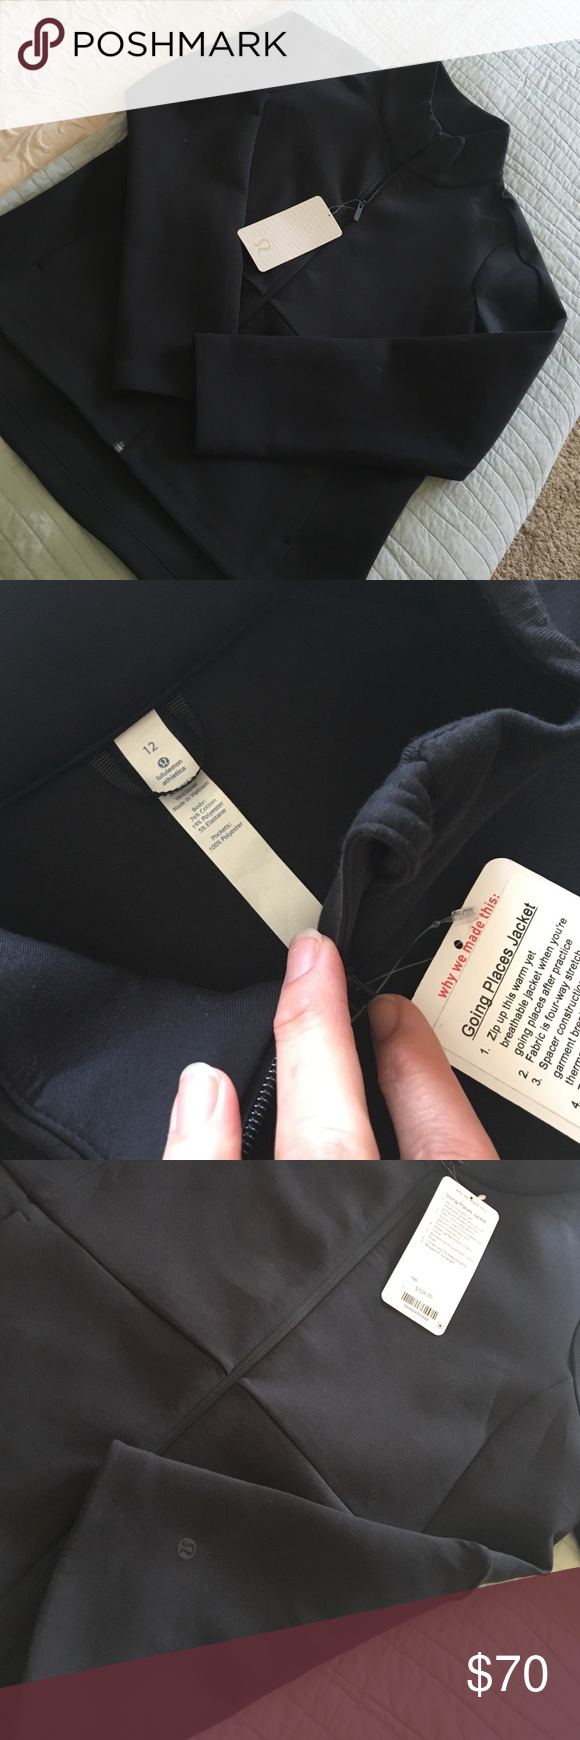 Lululemon Going Places Jacket NWT black Lululemon Going Places Jacket NWT black. Size 12. Generous fit. (Larger than scuba hoodie) Thick and smooth jacket. Warm and soft. Front pockets. Longer in back. Logo on back left bottom. lululemon athletica Jackets & Coats